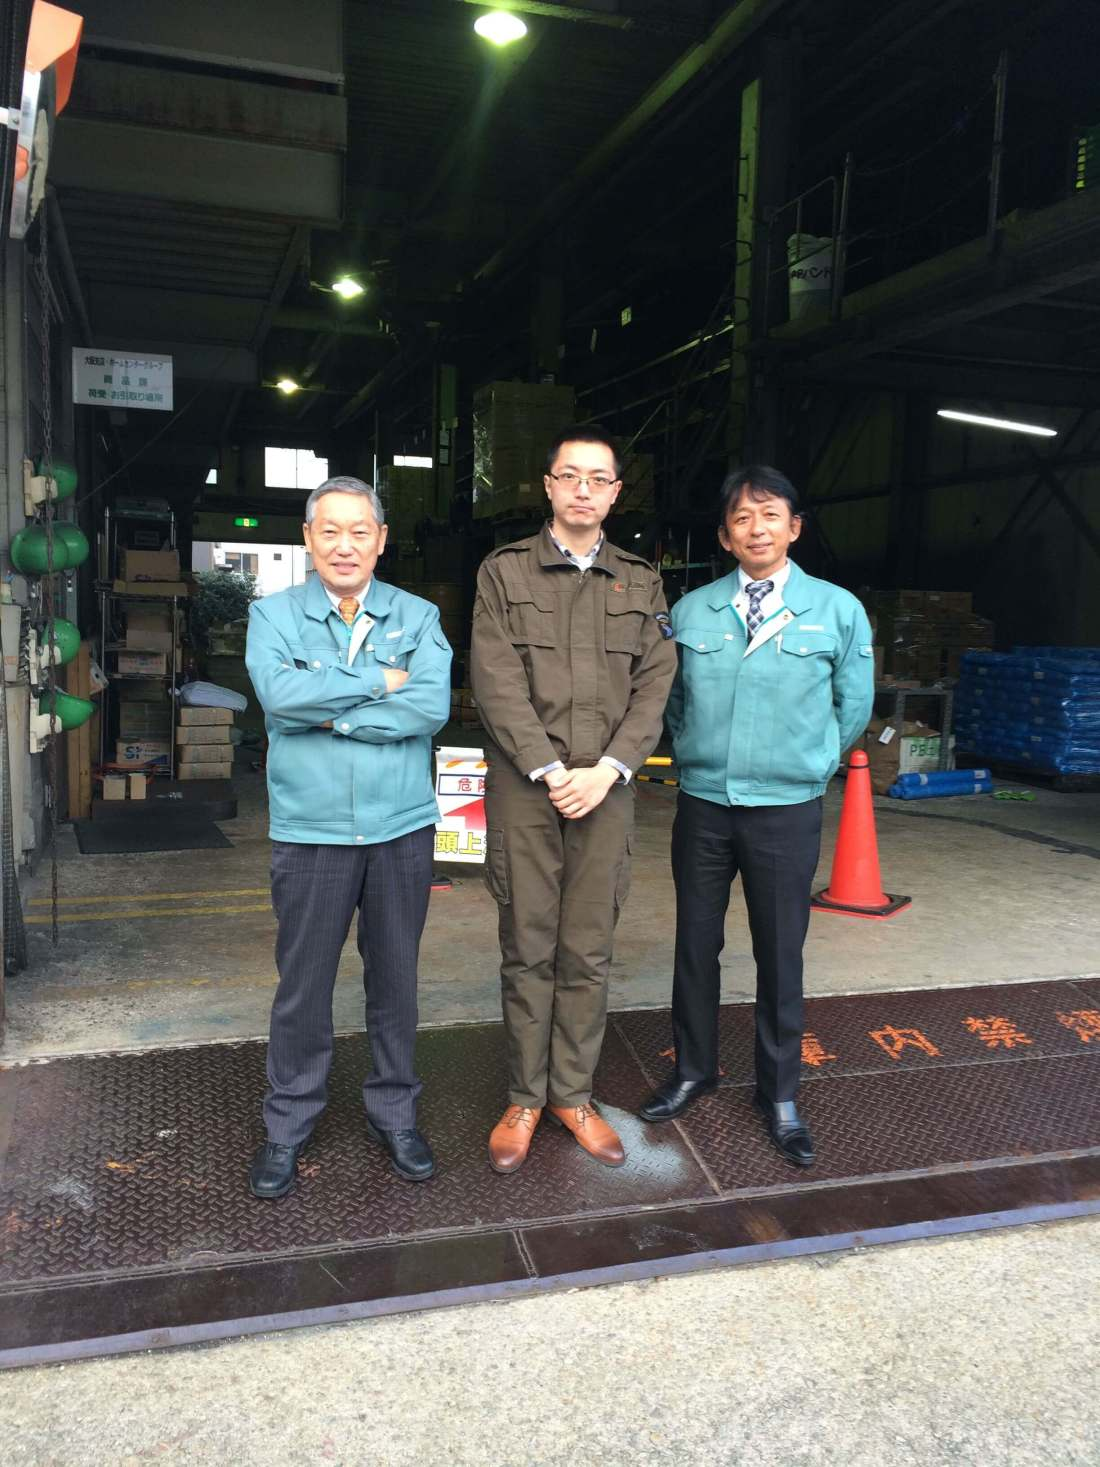 Our sales manager Mr. Hao Liang with Kondotec Board Manager Mr. Yamada and Osaka branch manager Mr. Asagawa